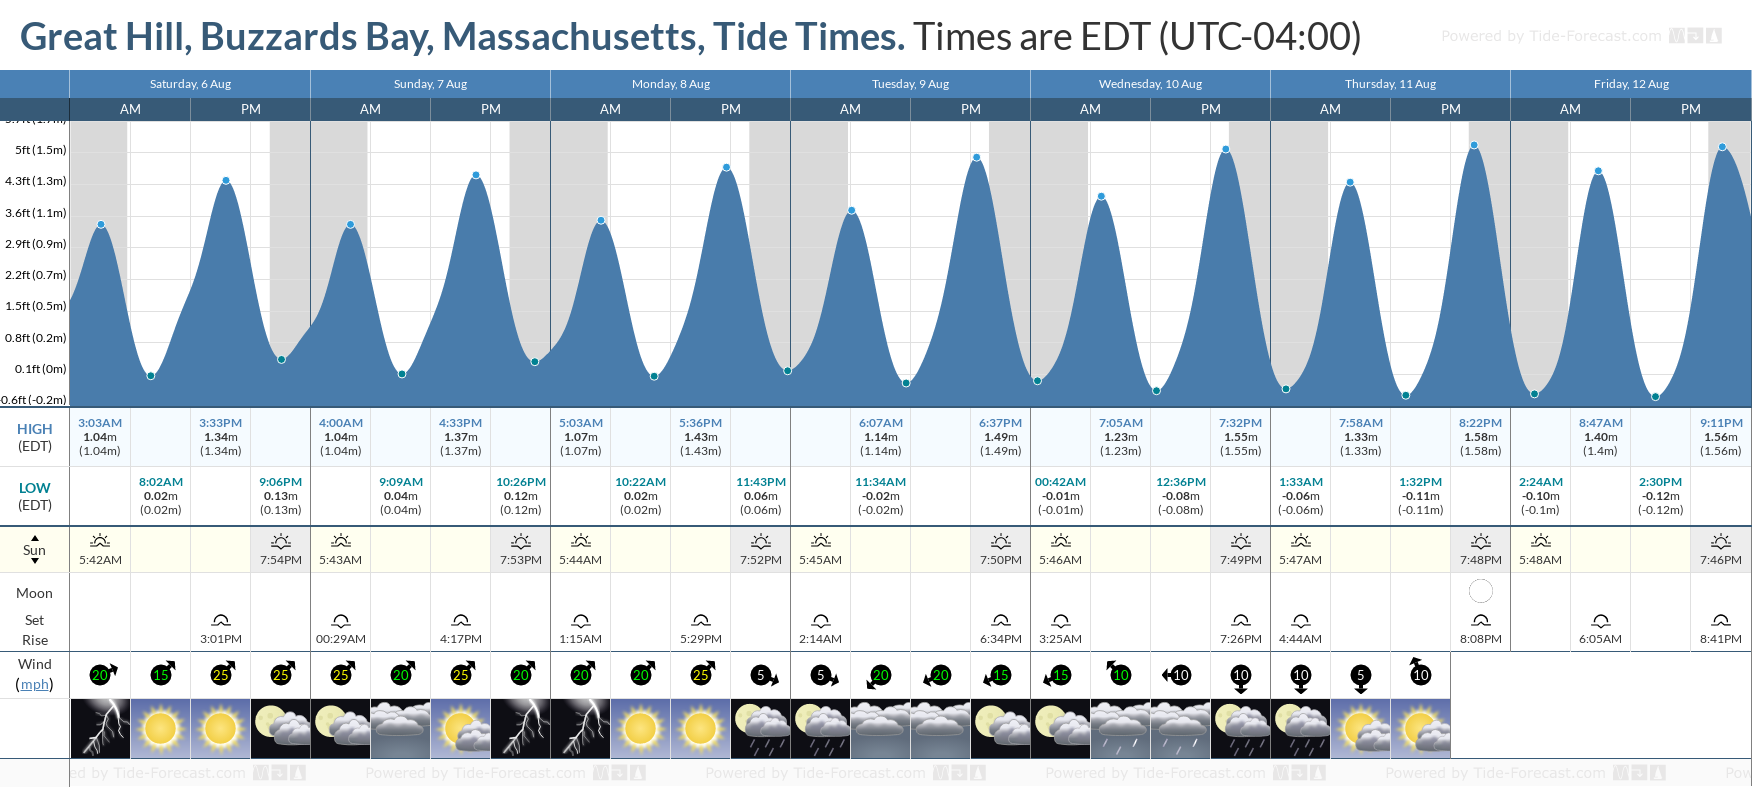 Great Hill, Buzzards Bay, Massachusetts Tide Chart including high and low tide tide times for the next 7 days